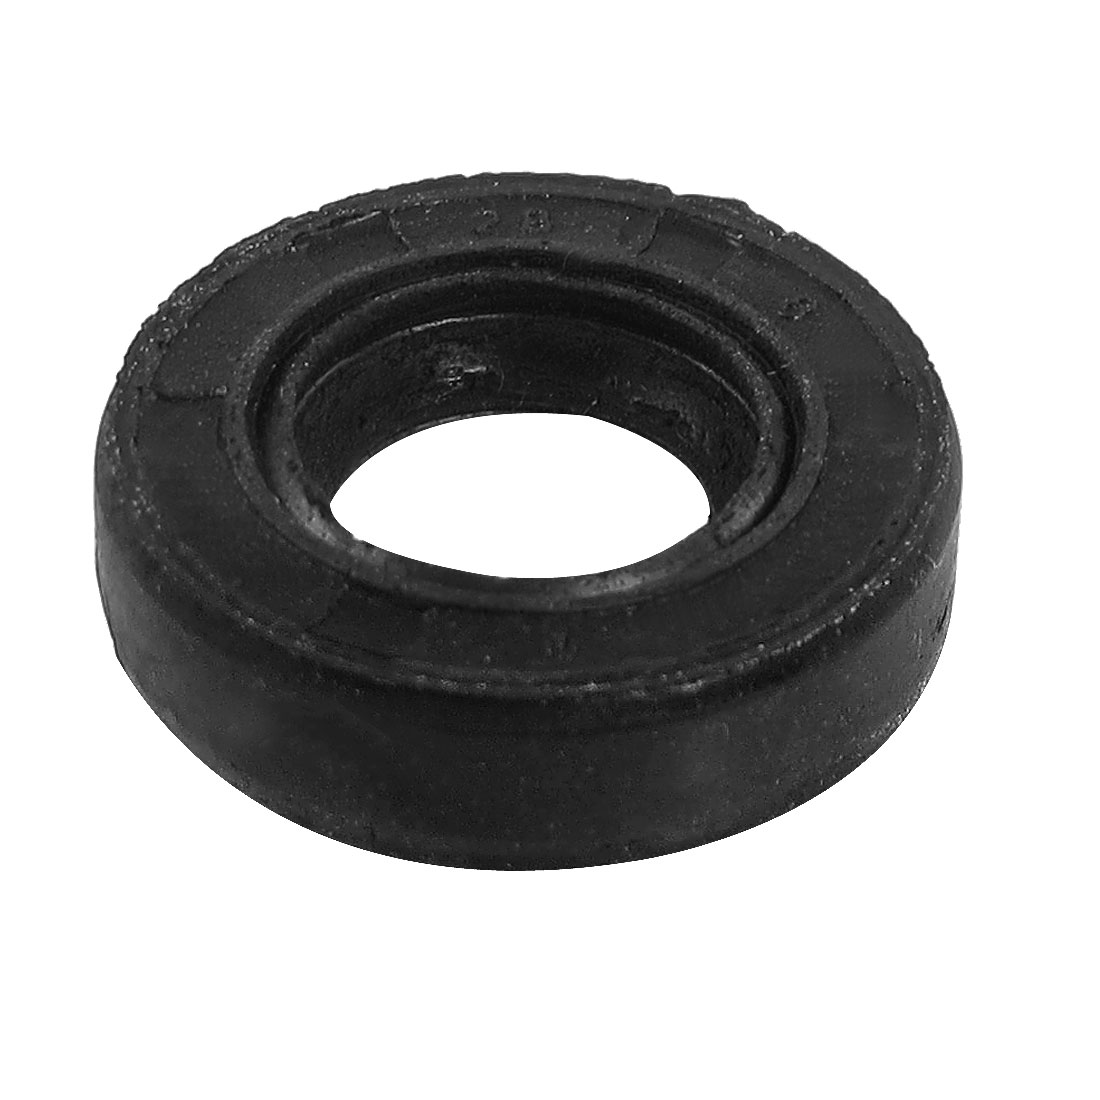 Black-Nitrile-Rubber-Dual-Lips-Oil-Shaft-Seal-TC-14mm-x-28mm-x-8mm